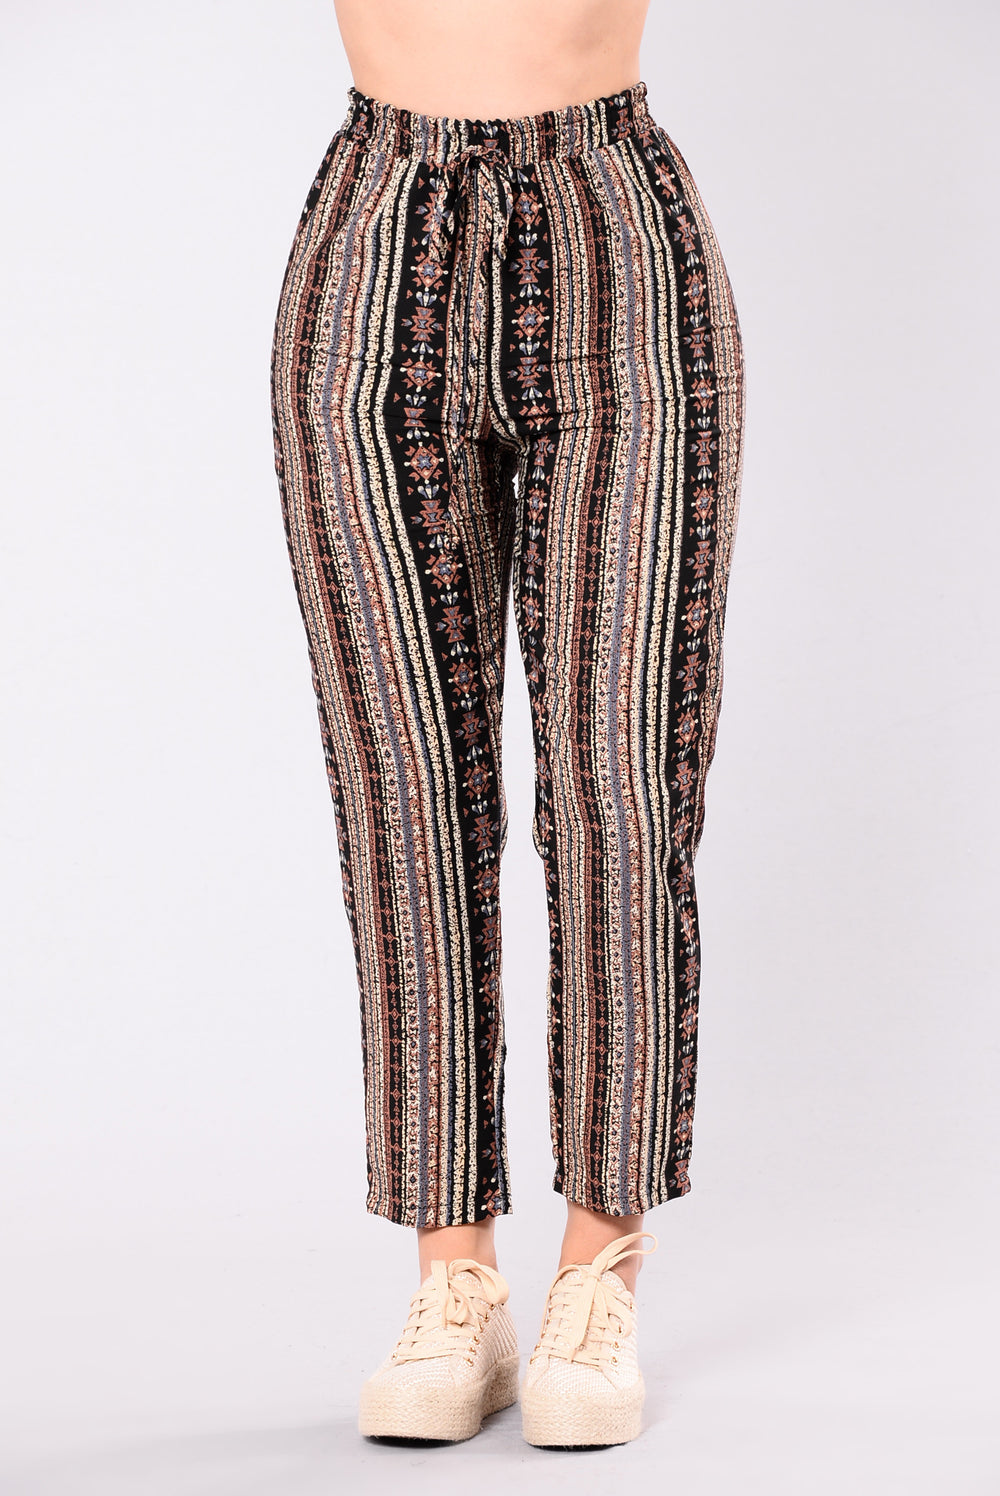 Tiki Torch Pants - Black/Brown